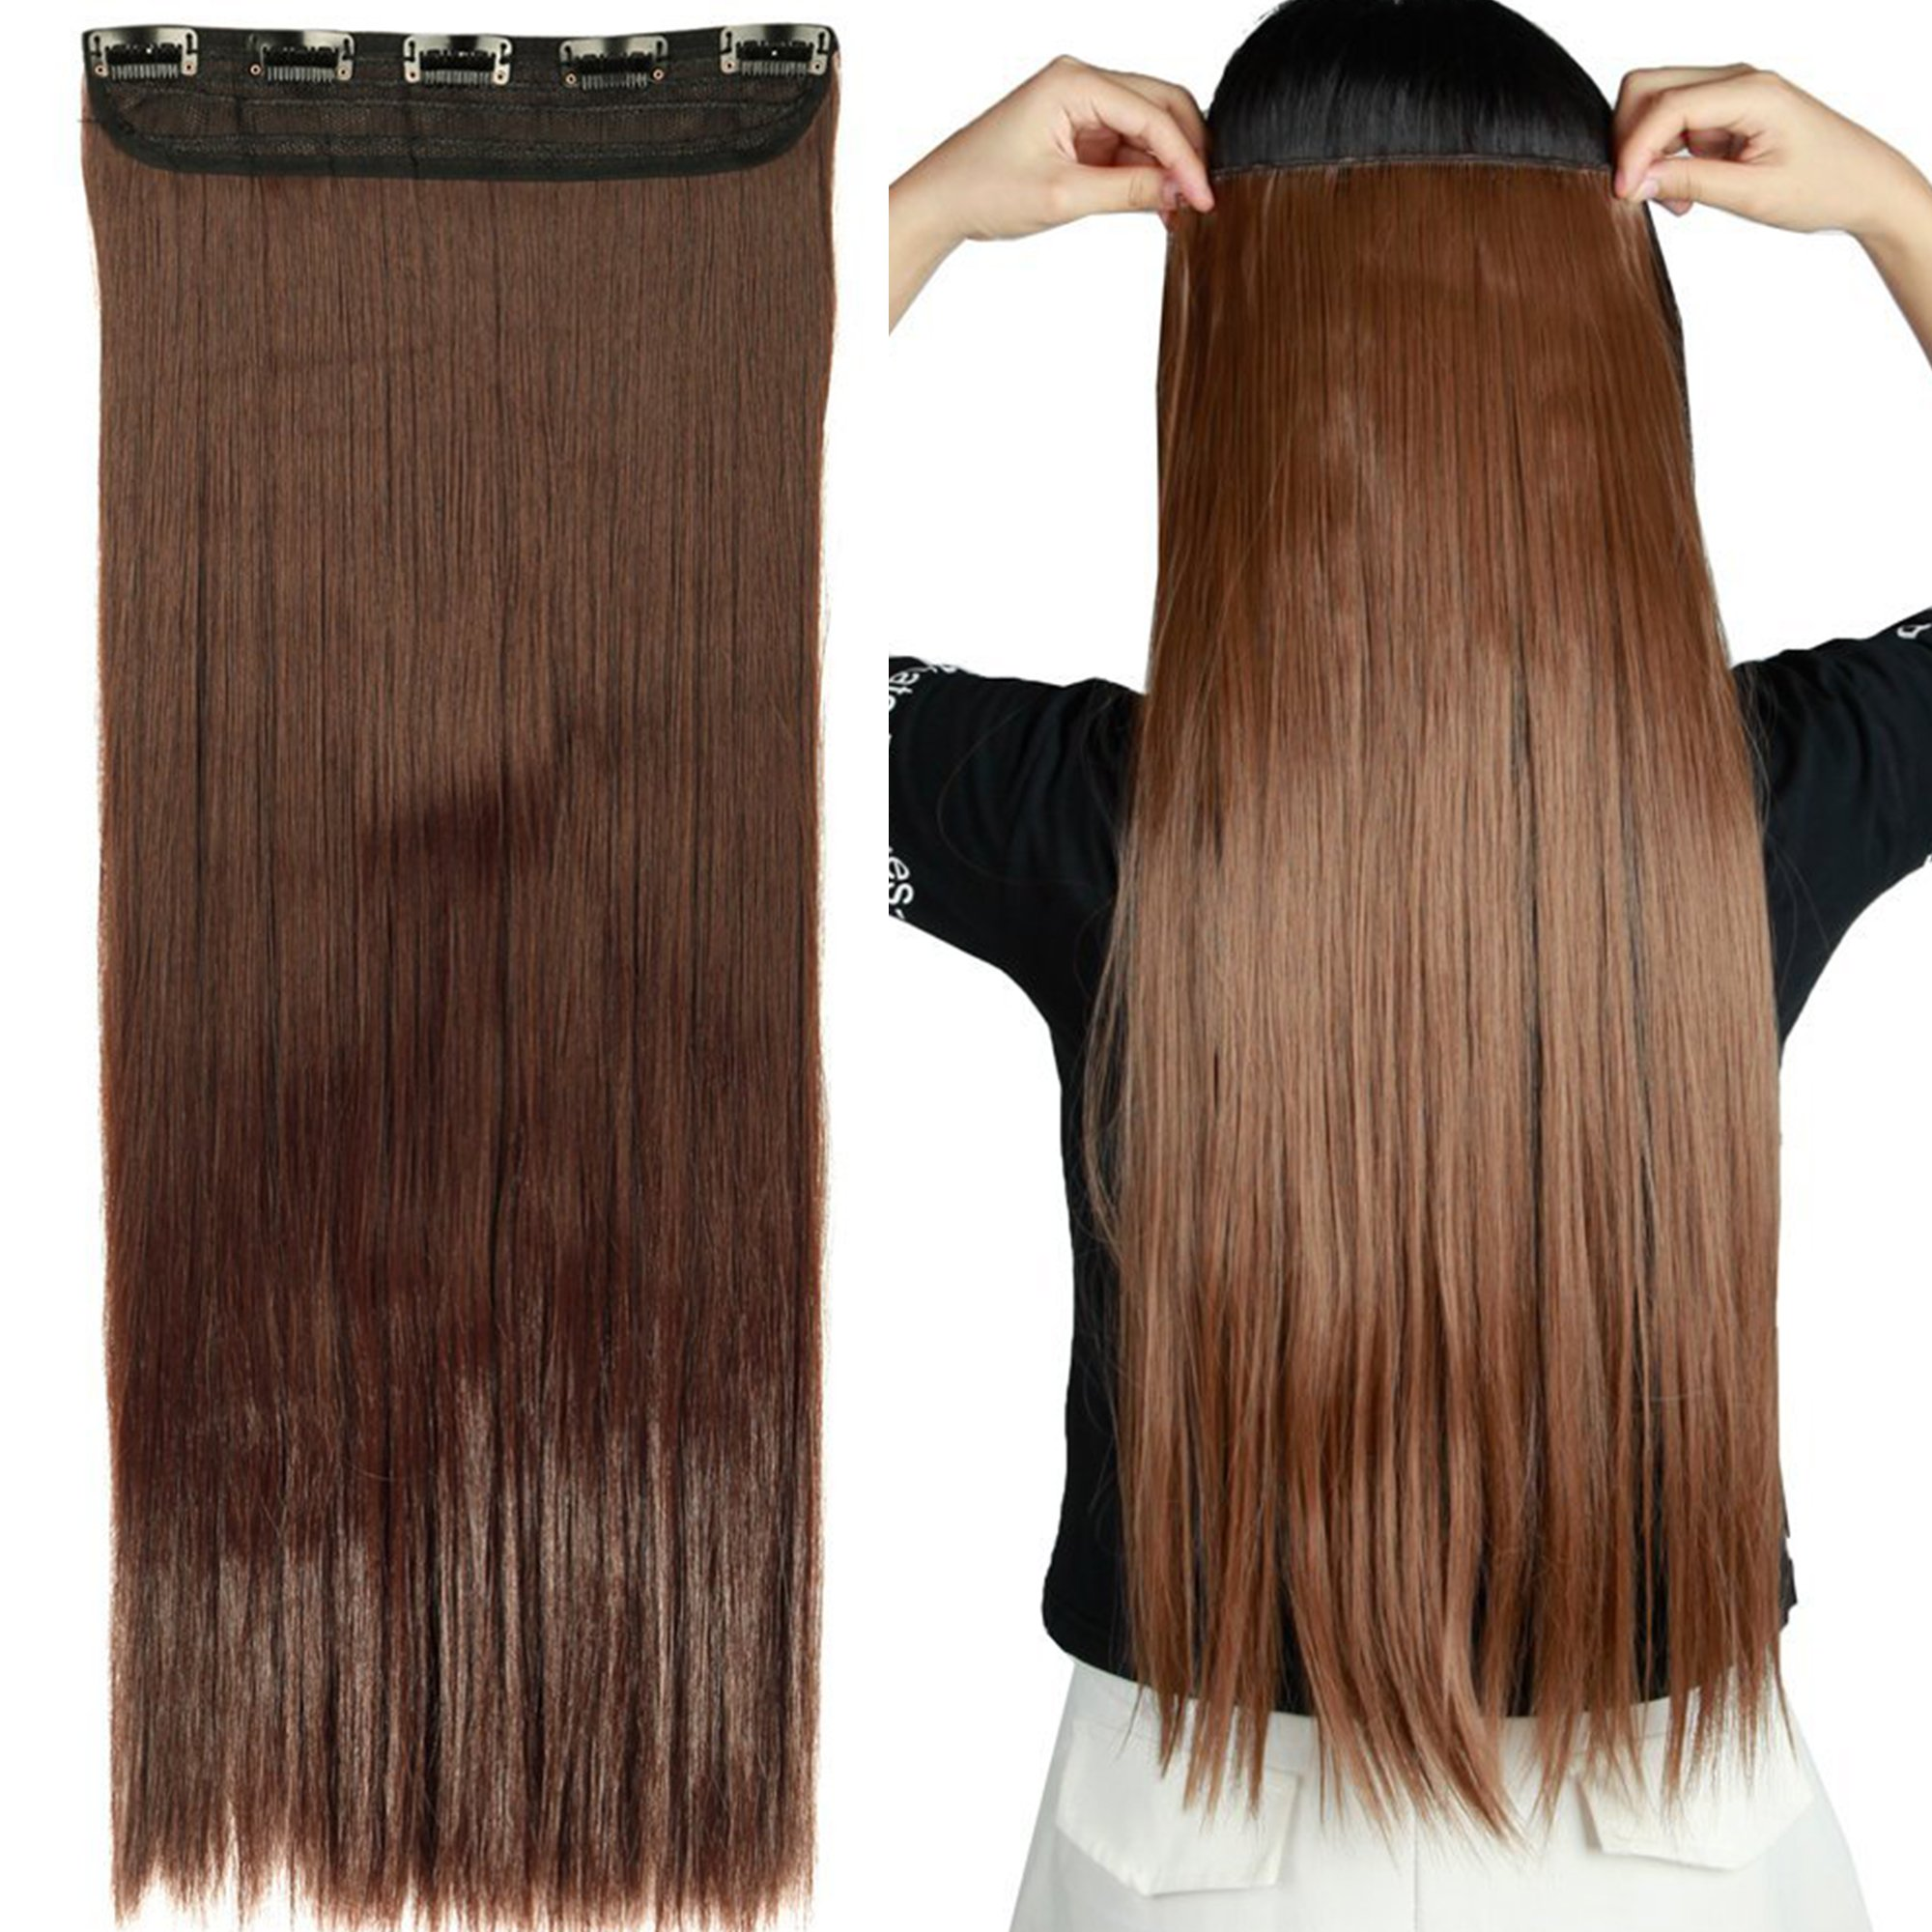 Amazon reecho fashion one piece clip in hair bangs fringe s noilite 2426 straight curly 34 full head one pmusecretfo Images